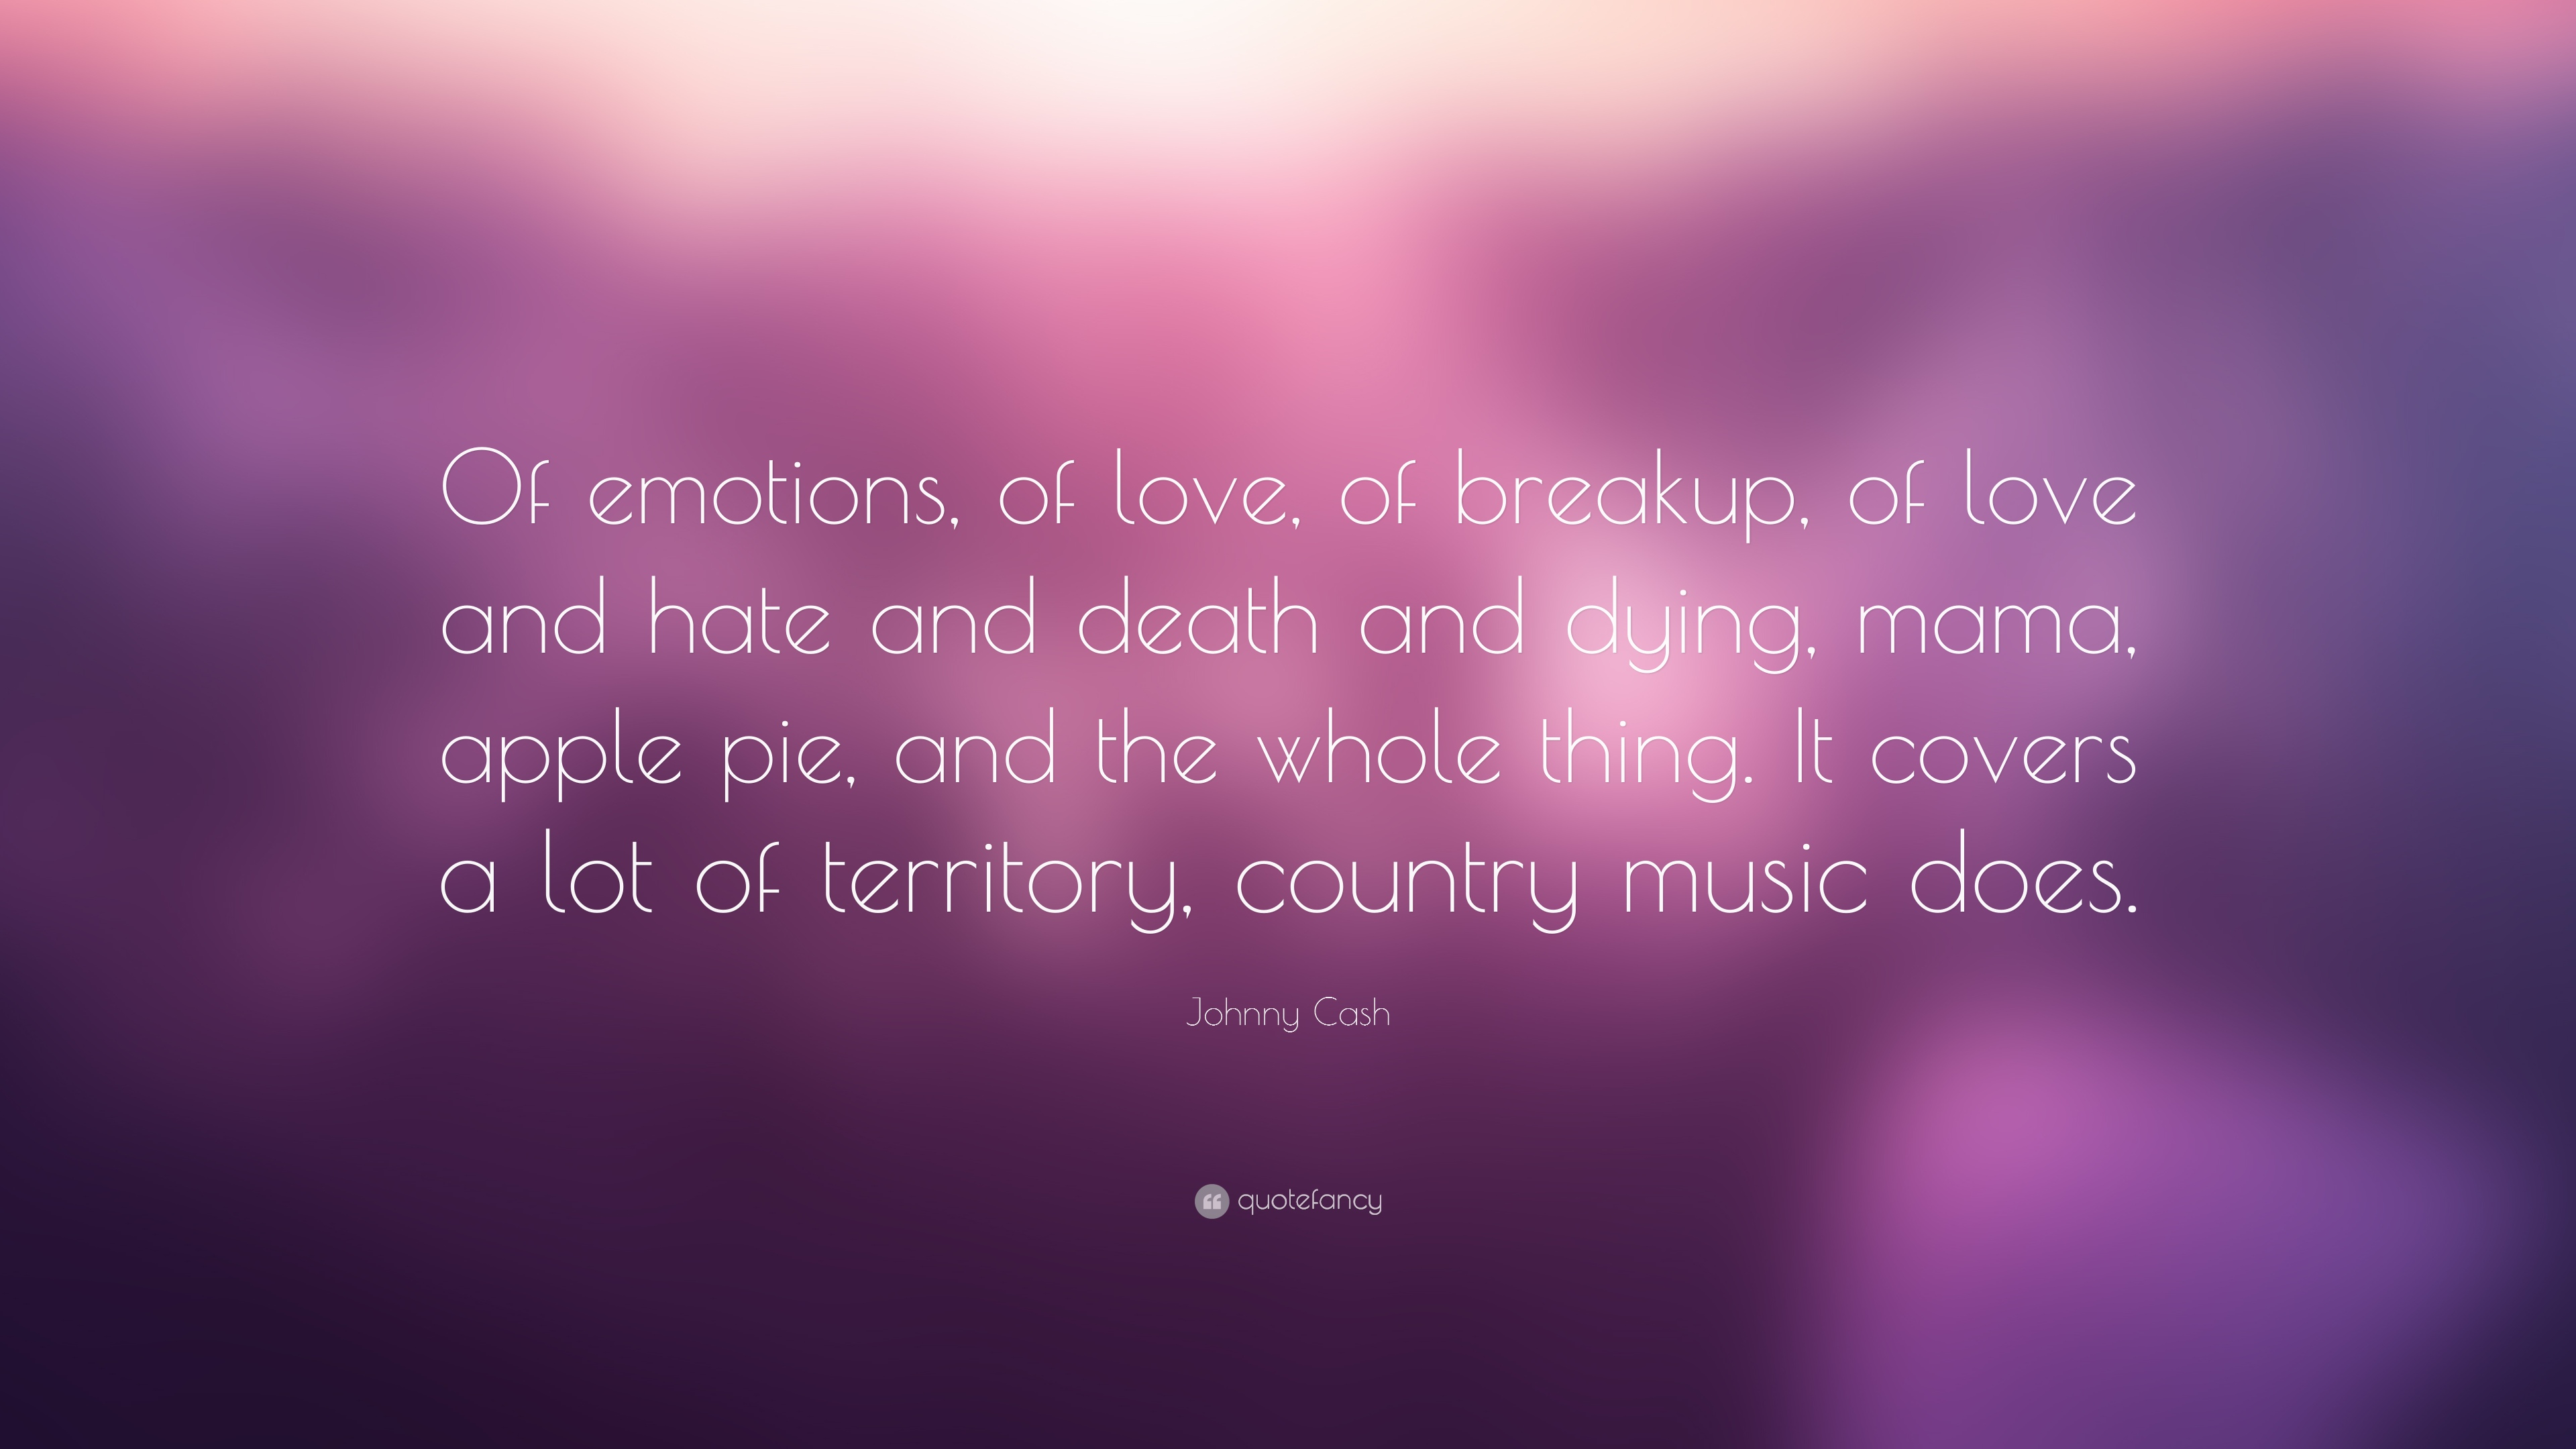 johnny cash quote of emotions of love of breakup of